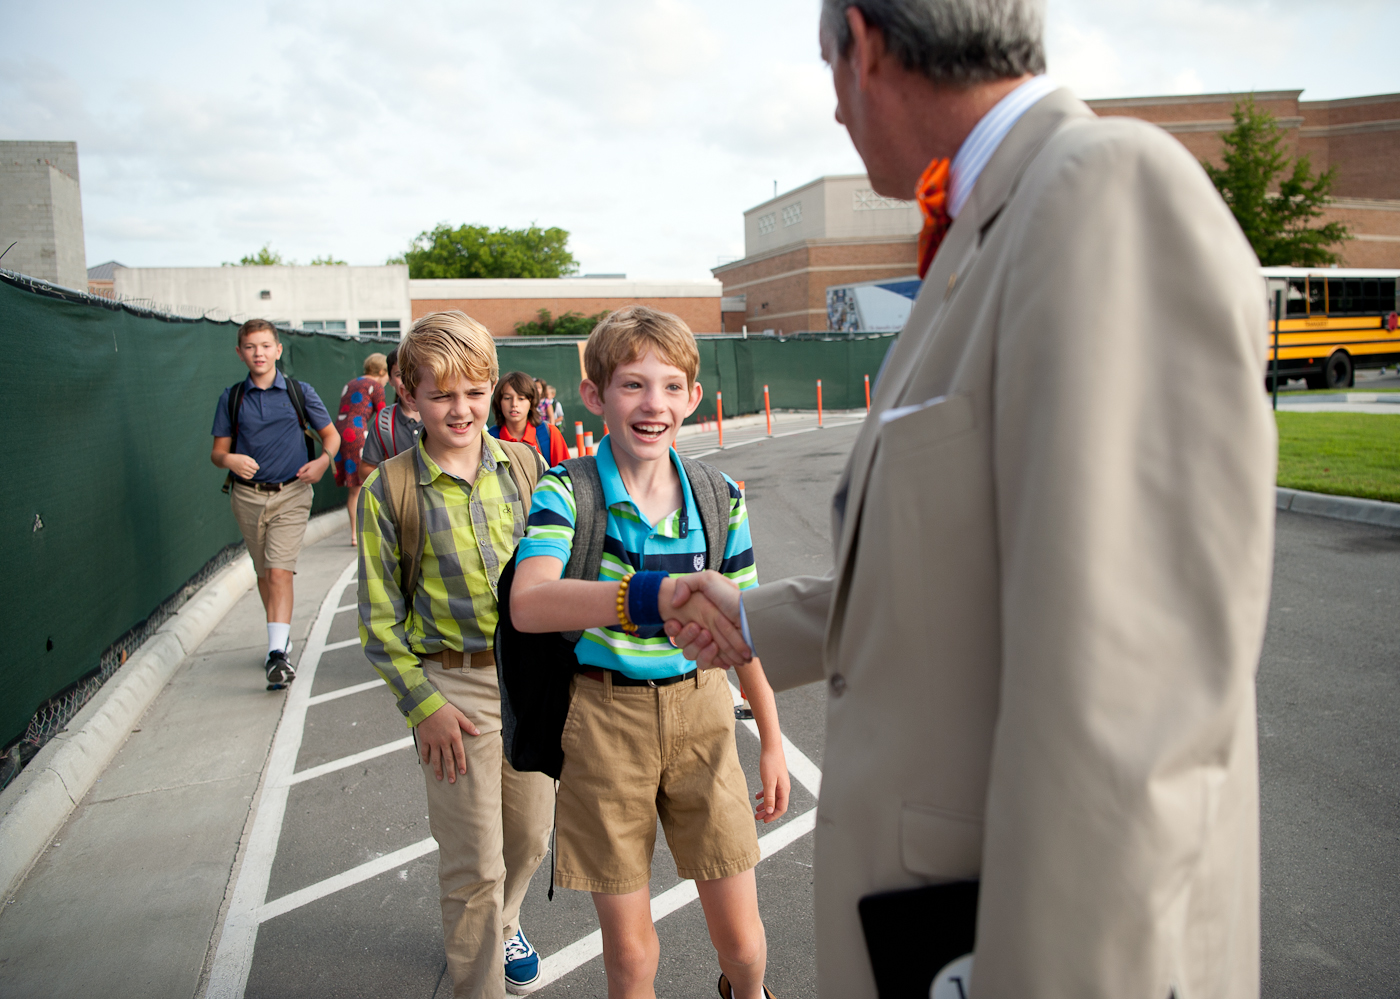 Mr. Manning greets students with a handshake on their first day of school.